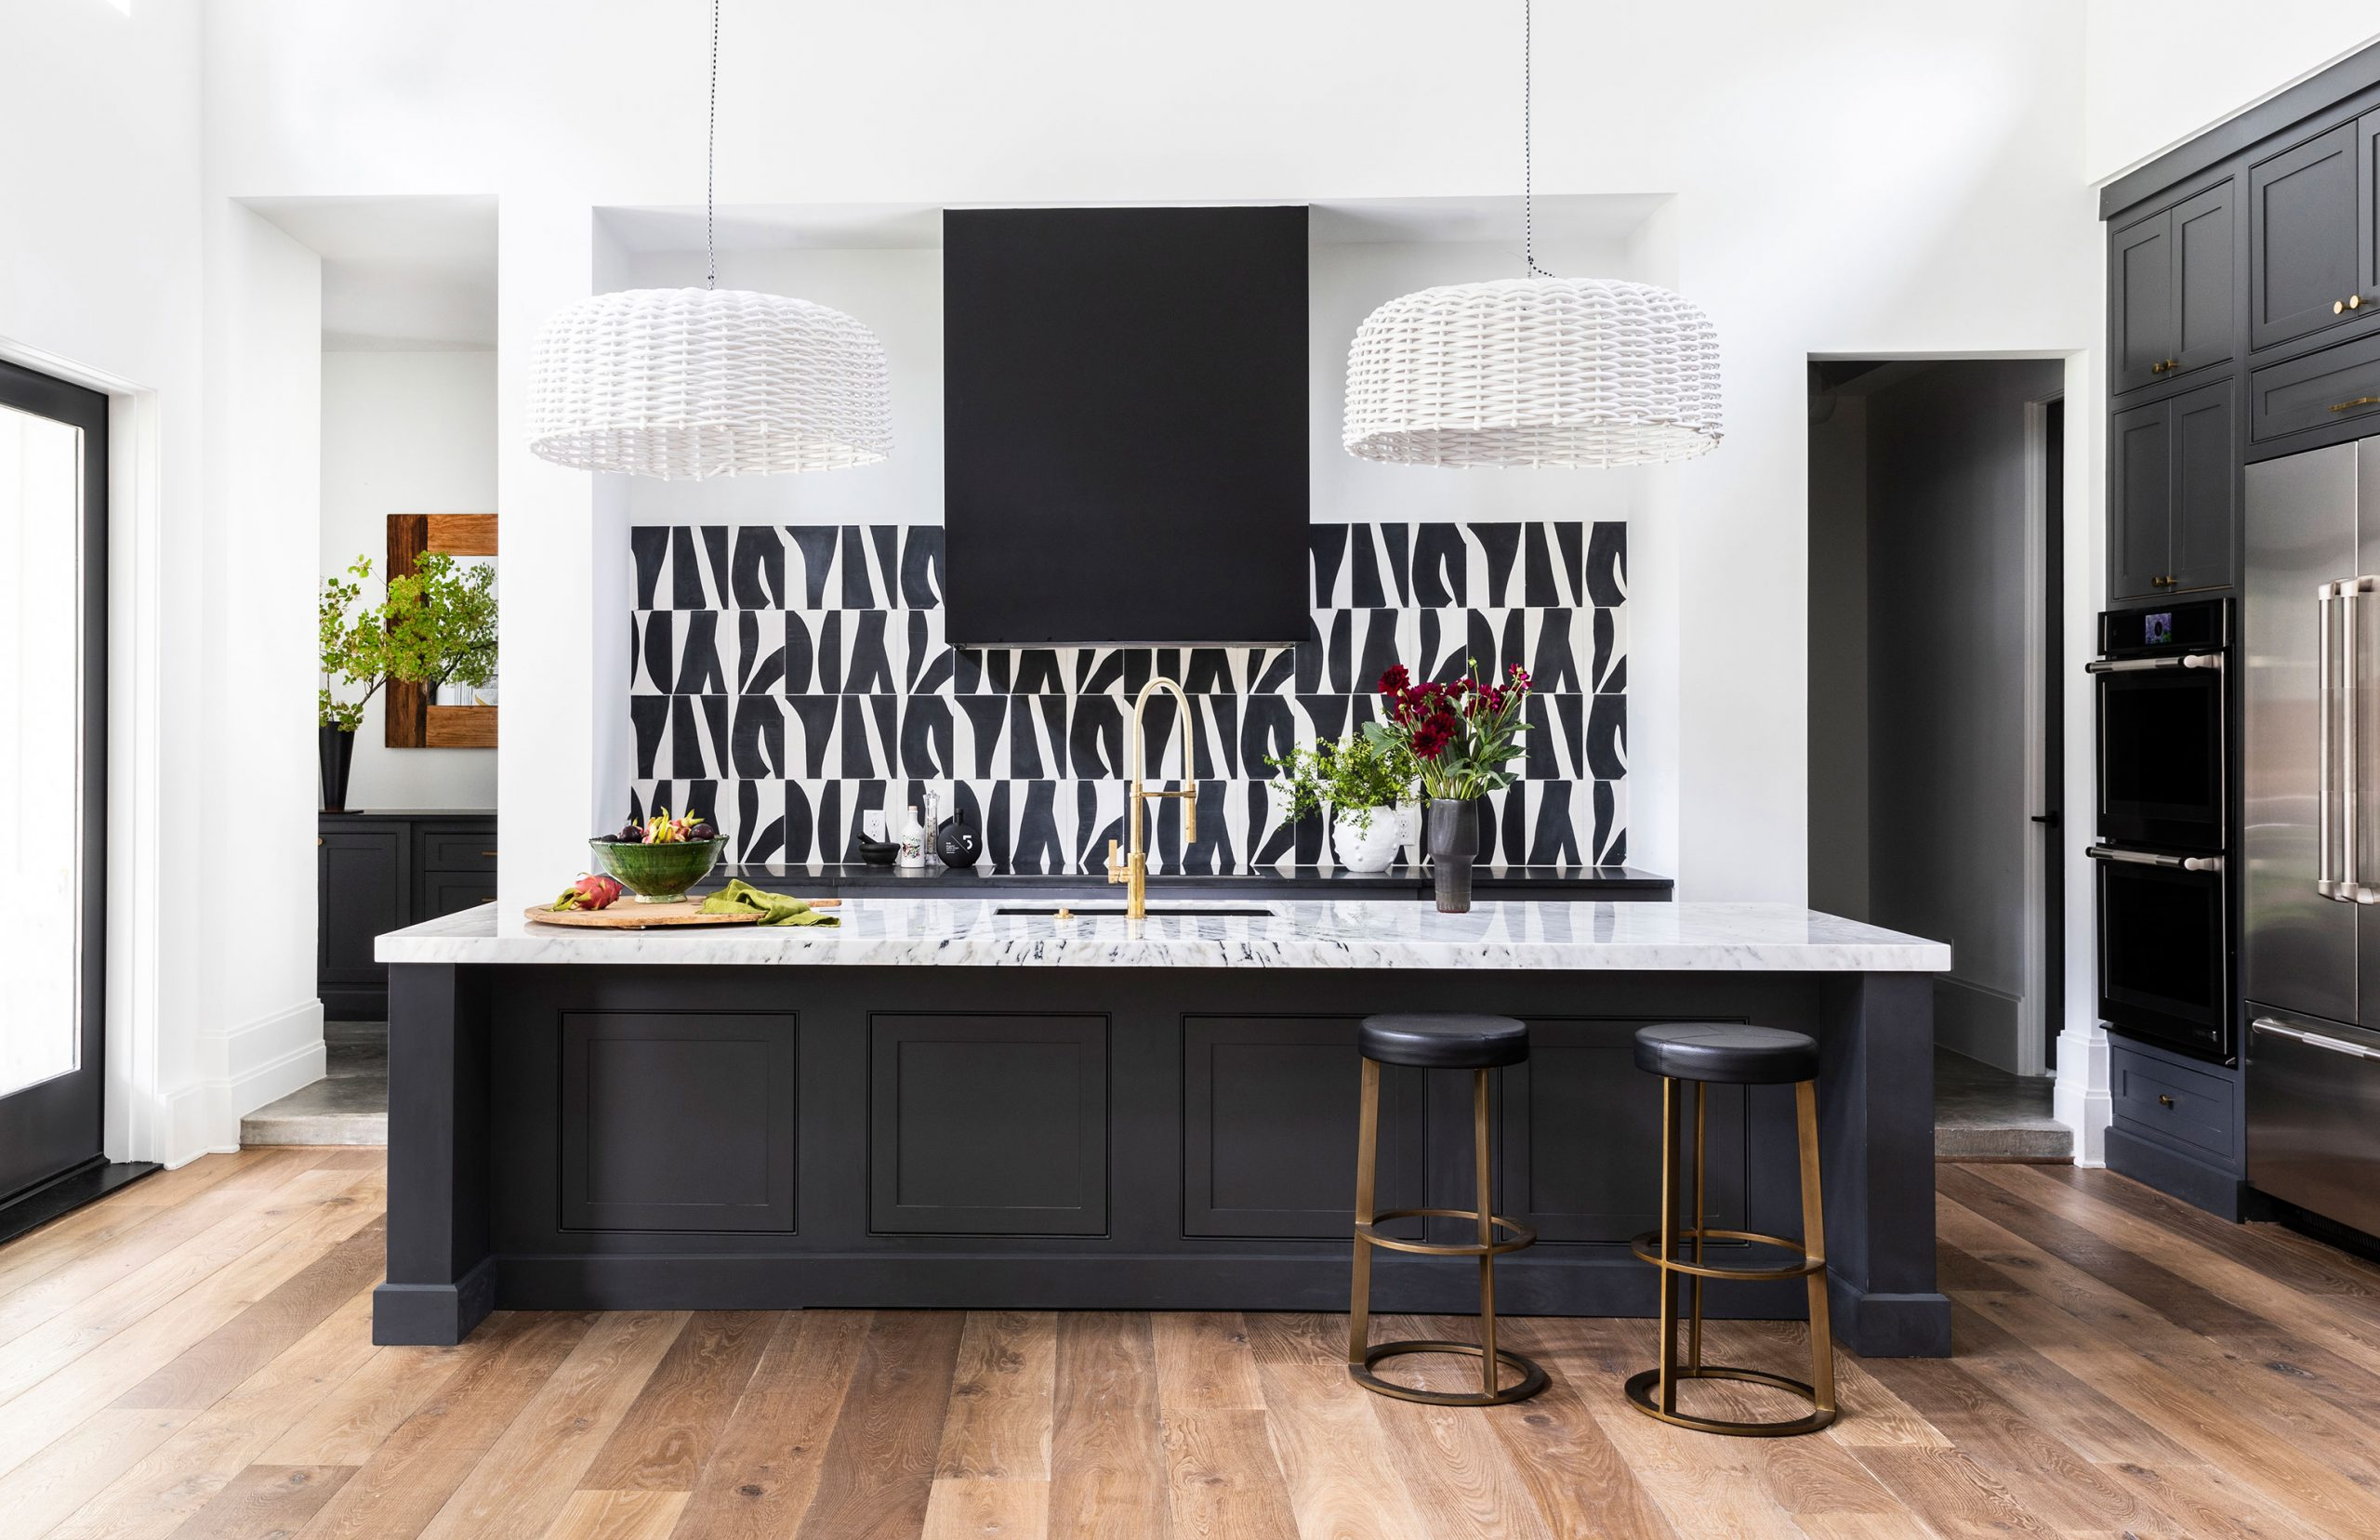 Kitchen black and white Interiors Photography - Julie Soefer Photography